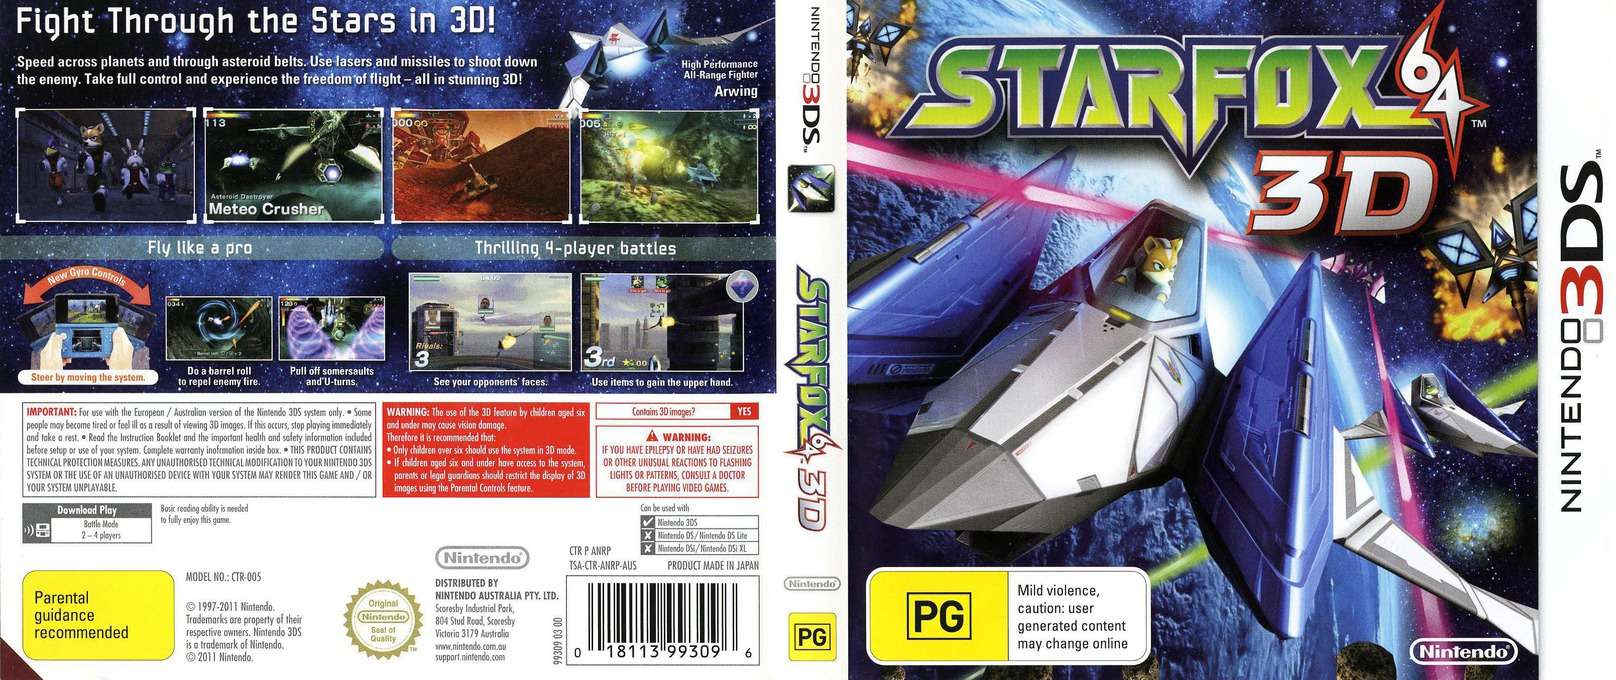 Star Fox 64 3D 3DS coverfullHQ (ANRP)